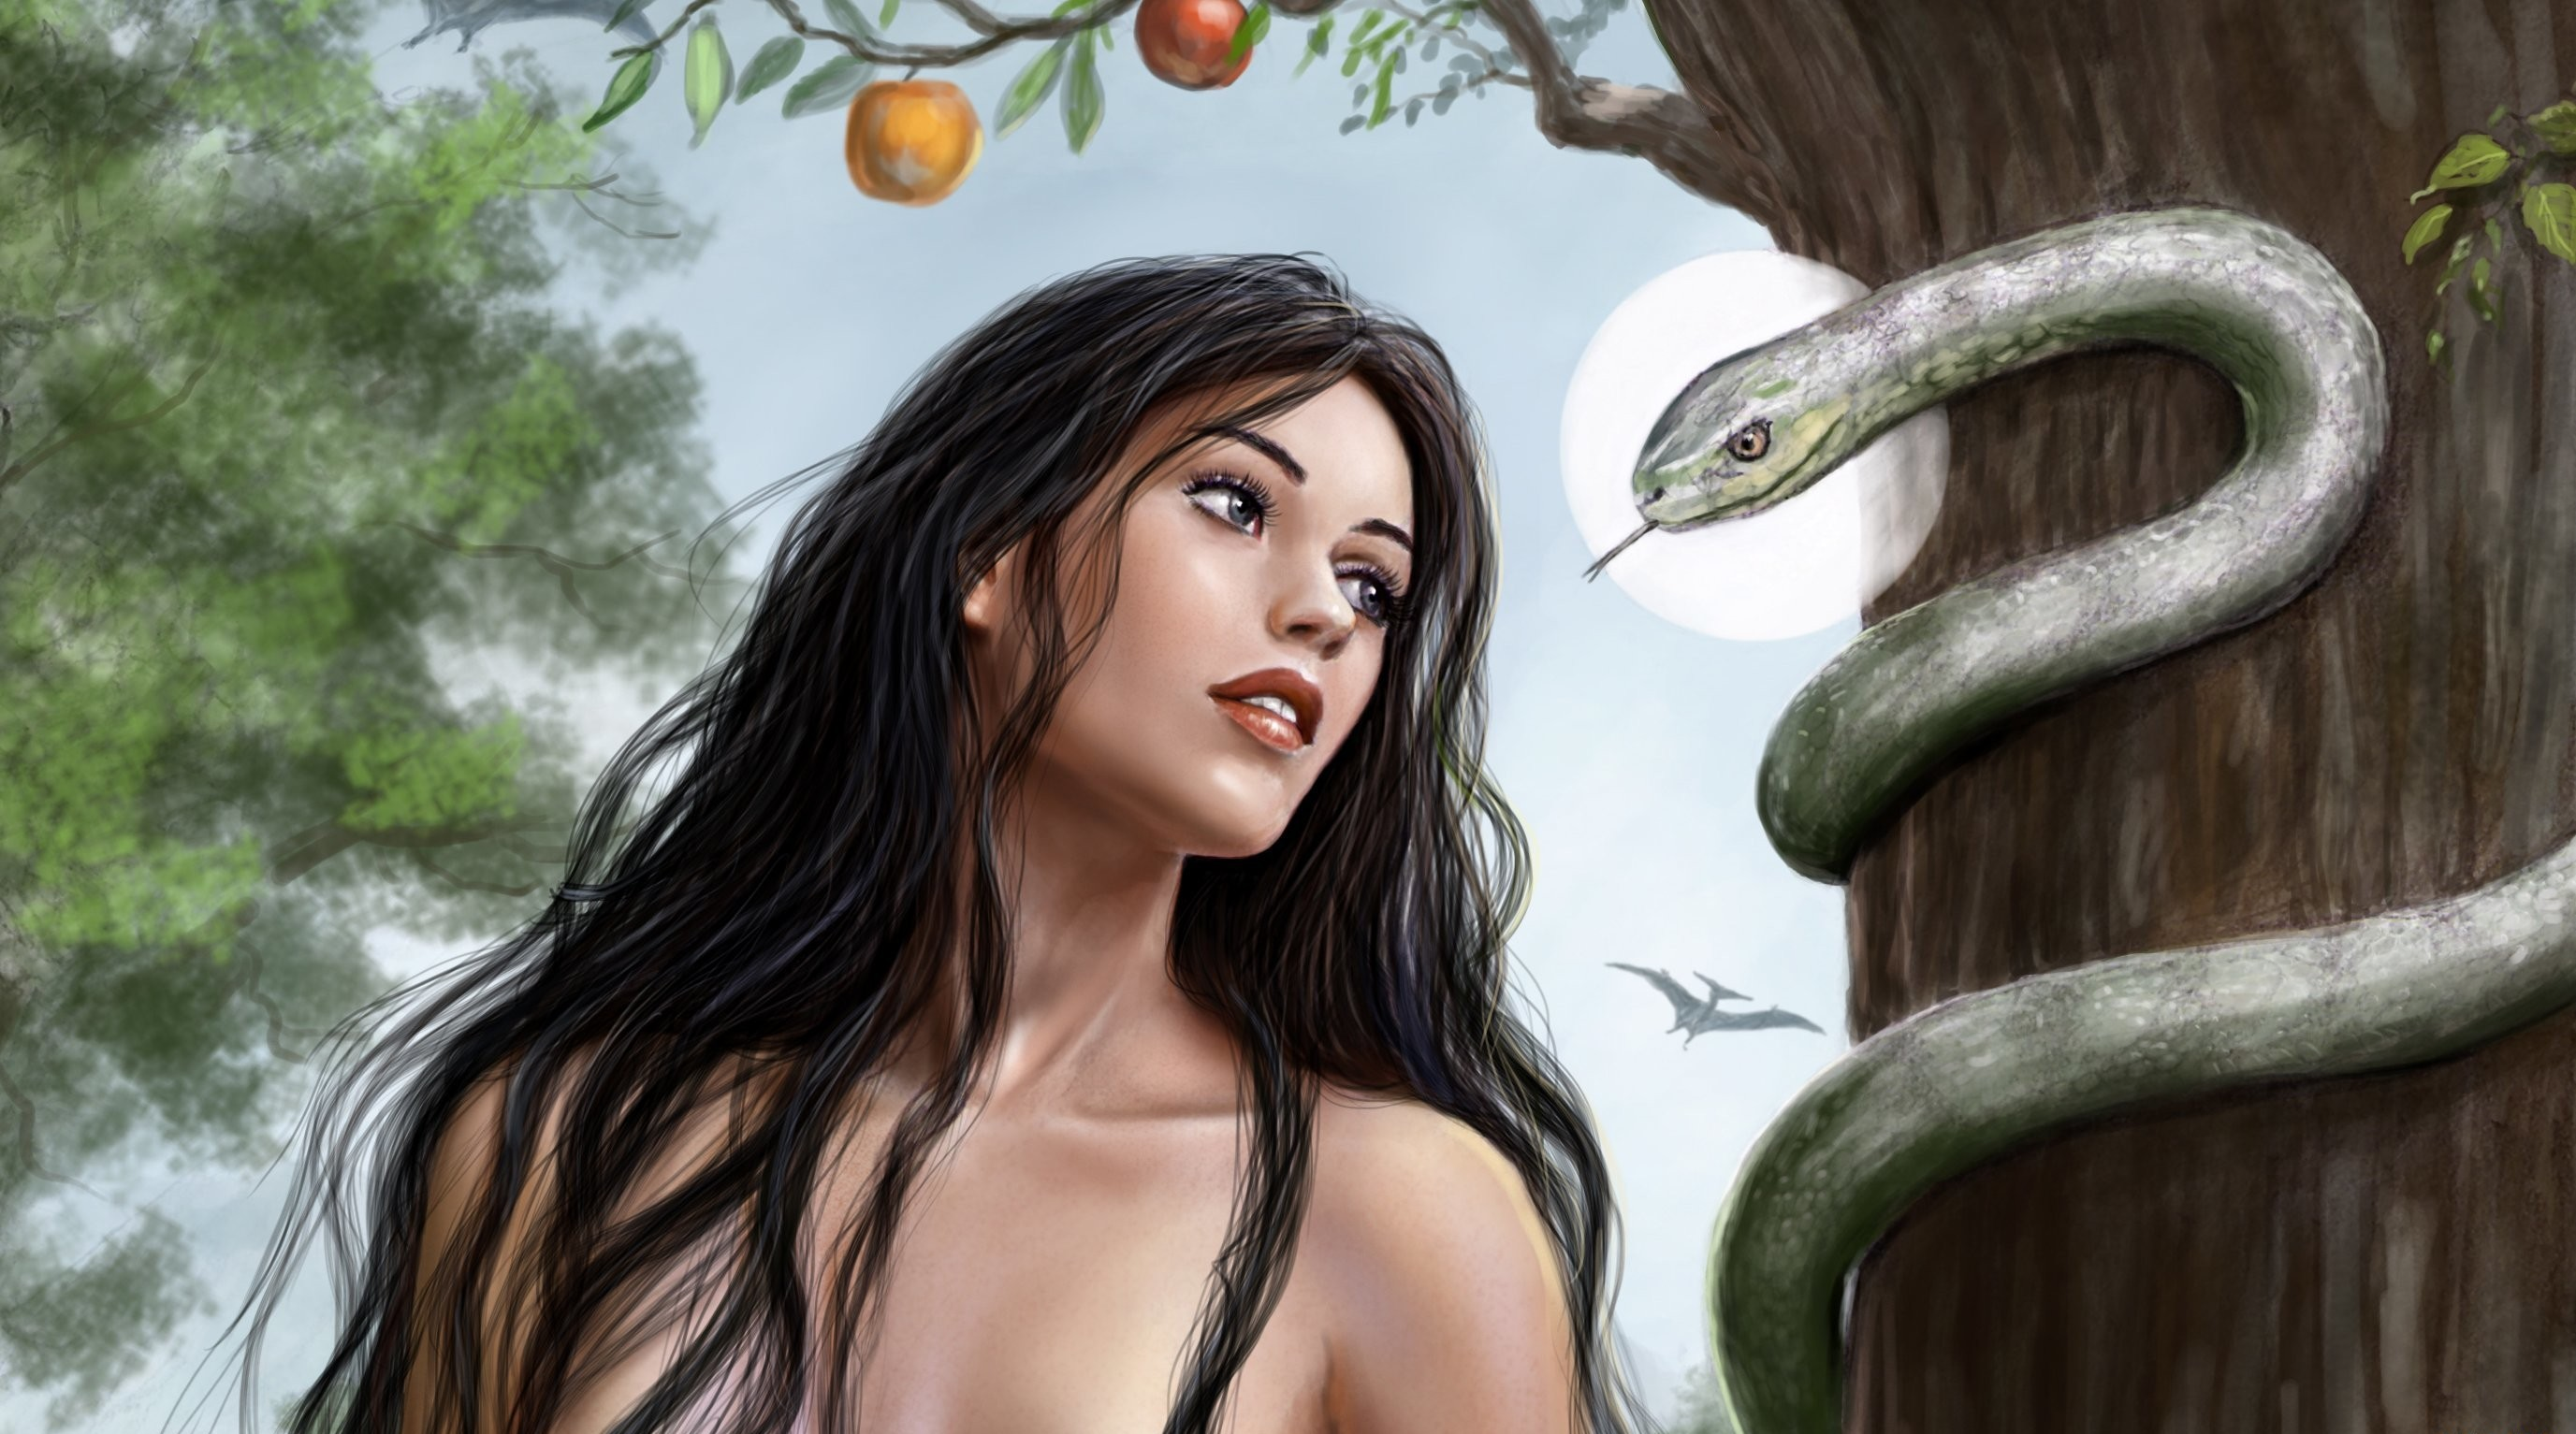 Eve full hd wallpaper and background image 2753x1533 id552371 fantasy women woman apple snake wallpaper voltagebd Choice Image